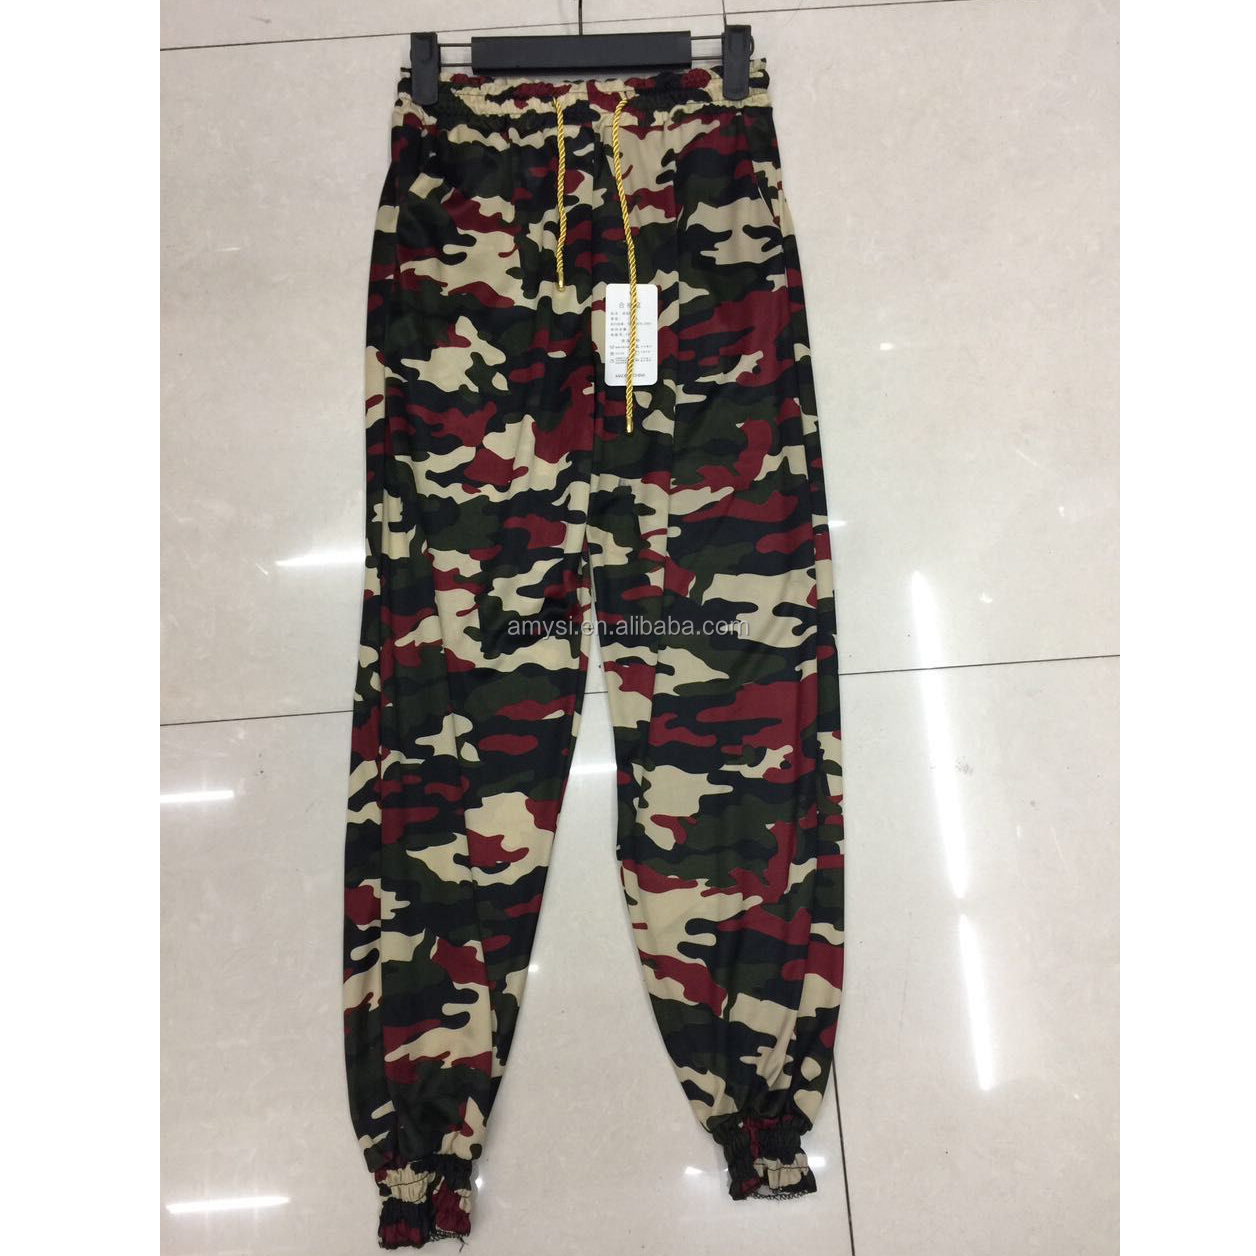 1.3 USD WK016 Wholesale Women Casual Work Pants Trousers Cheap Army Green camouflage cargo pants